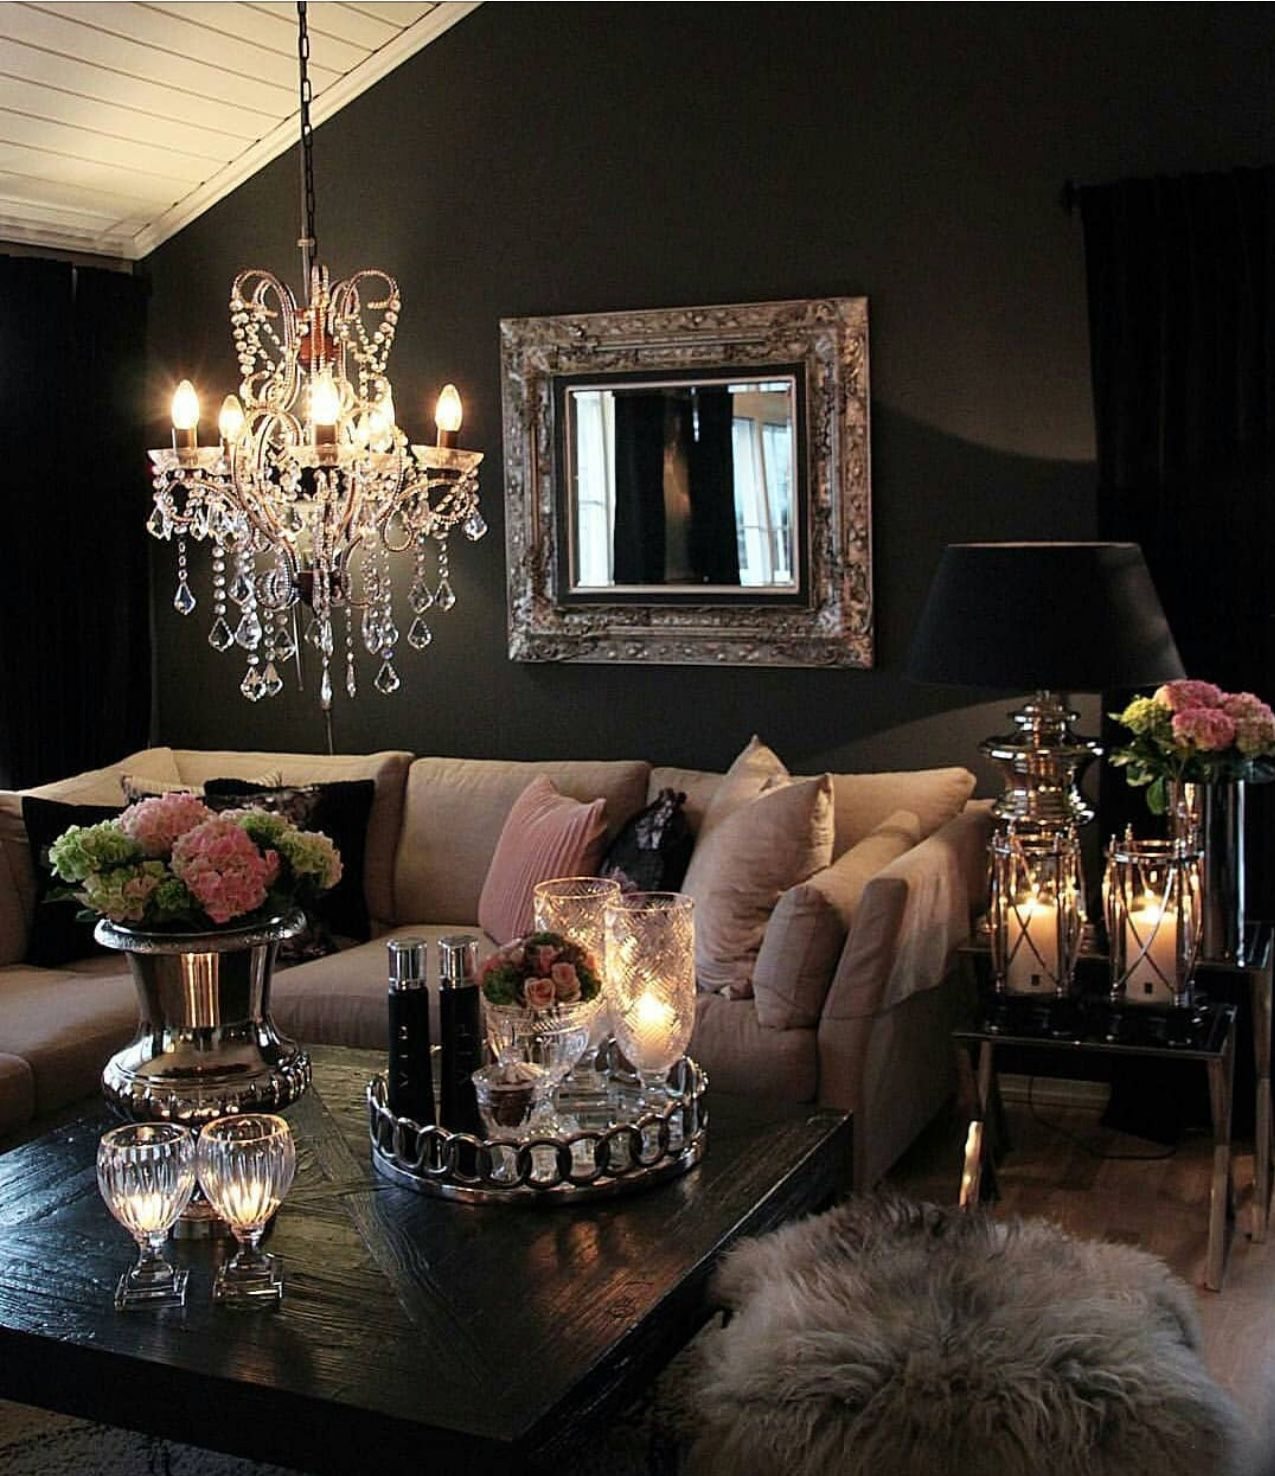 Pin By Mary Vizina On Dream Home Cozy Home Decorating Living Room Decor Home Decor Bedroom